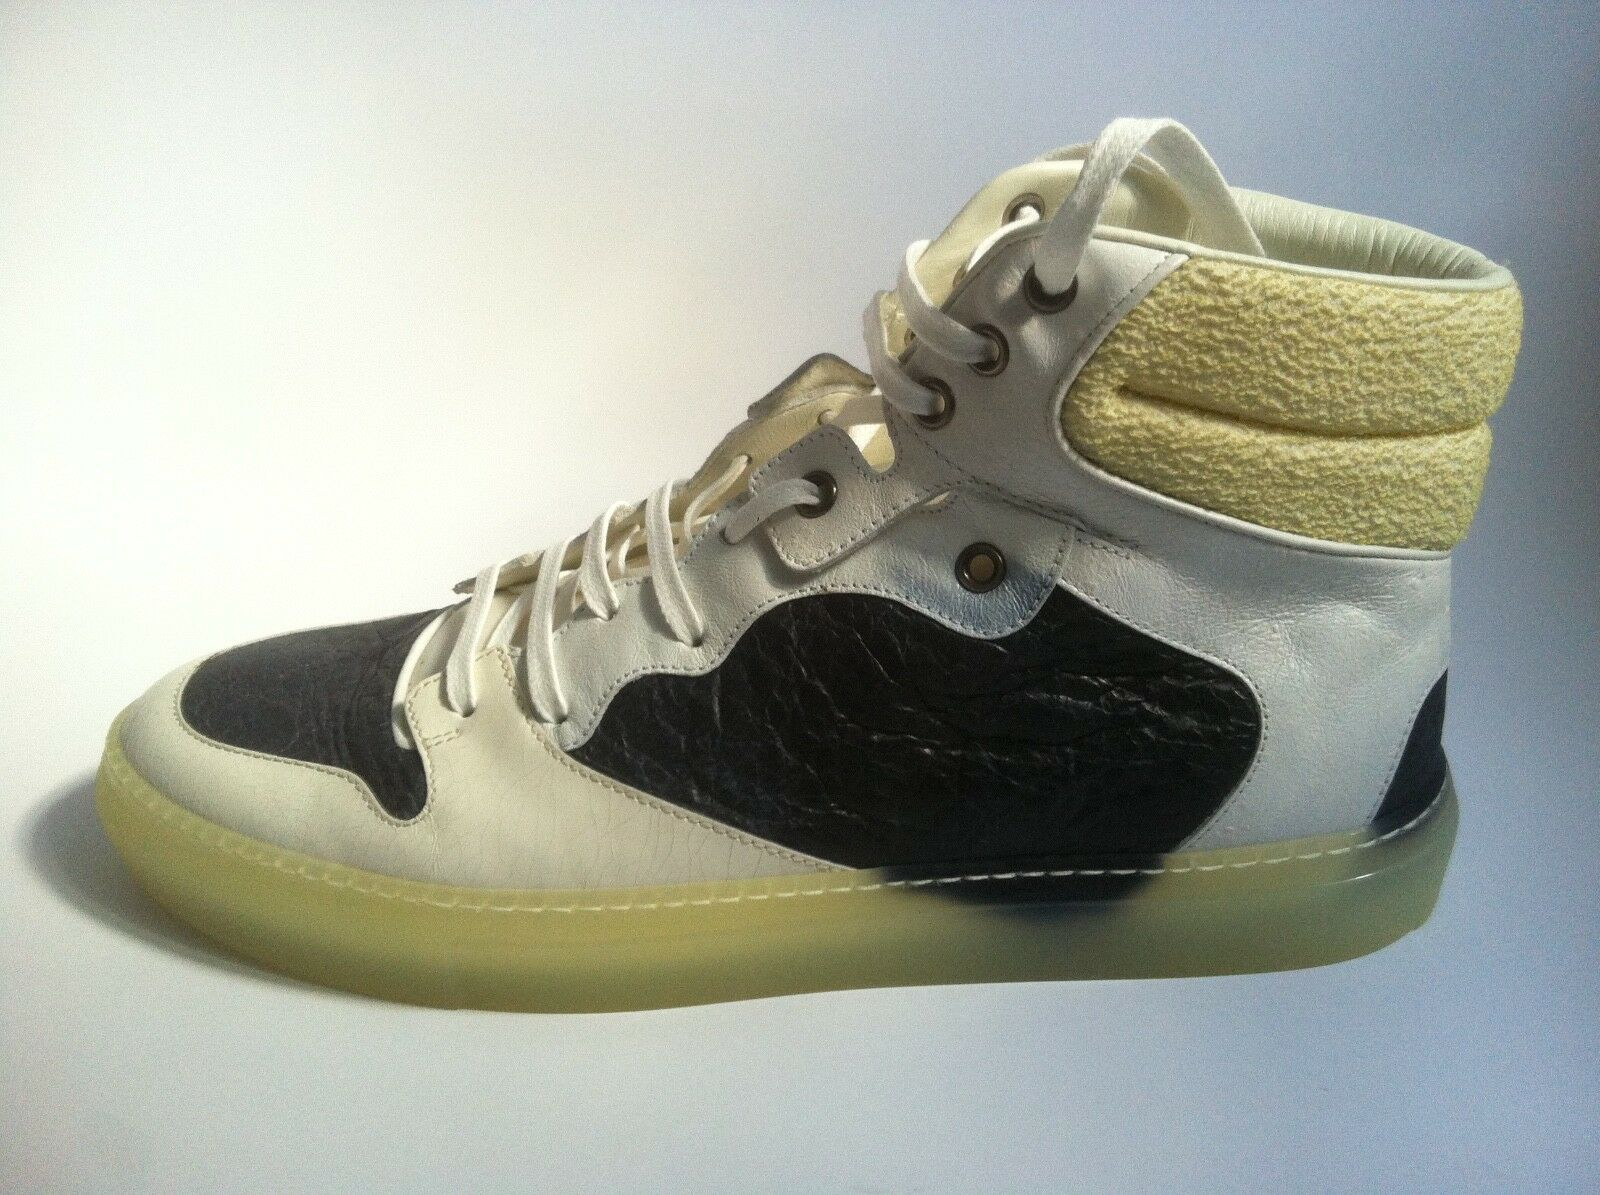 Balenciaga PARIS High Top Patchwork scarpe da ginnastica Trainers Pelle Bianca UE 42 US 9 uk8